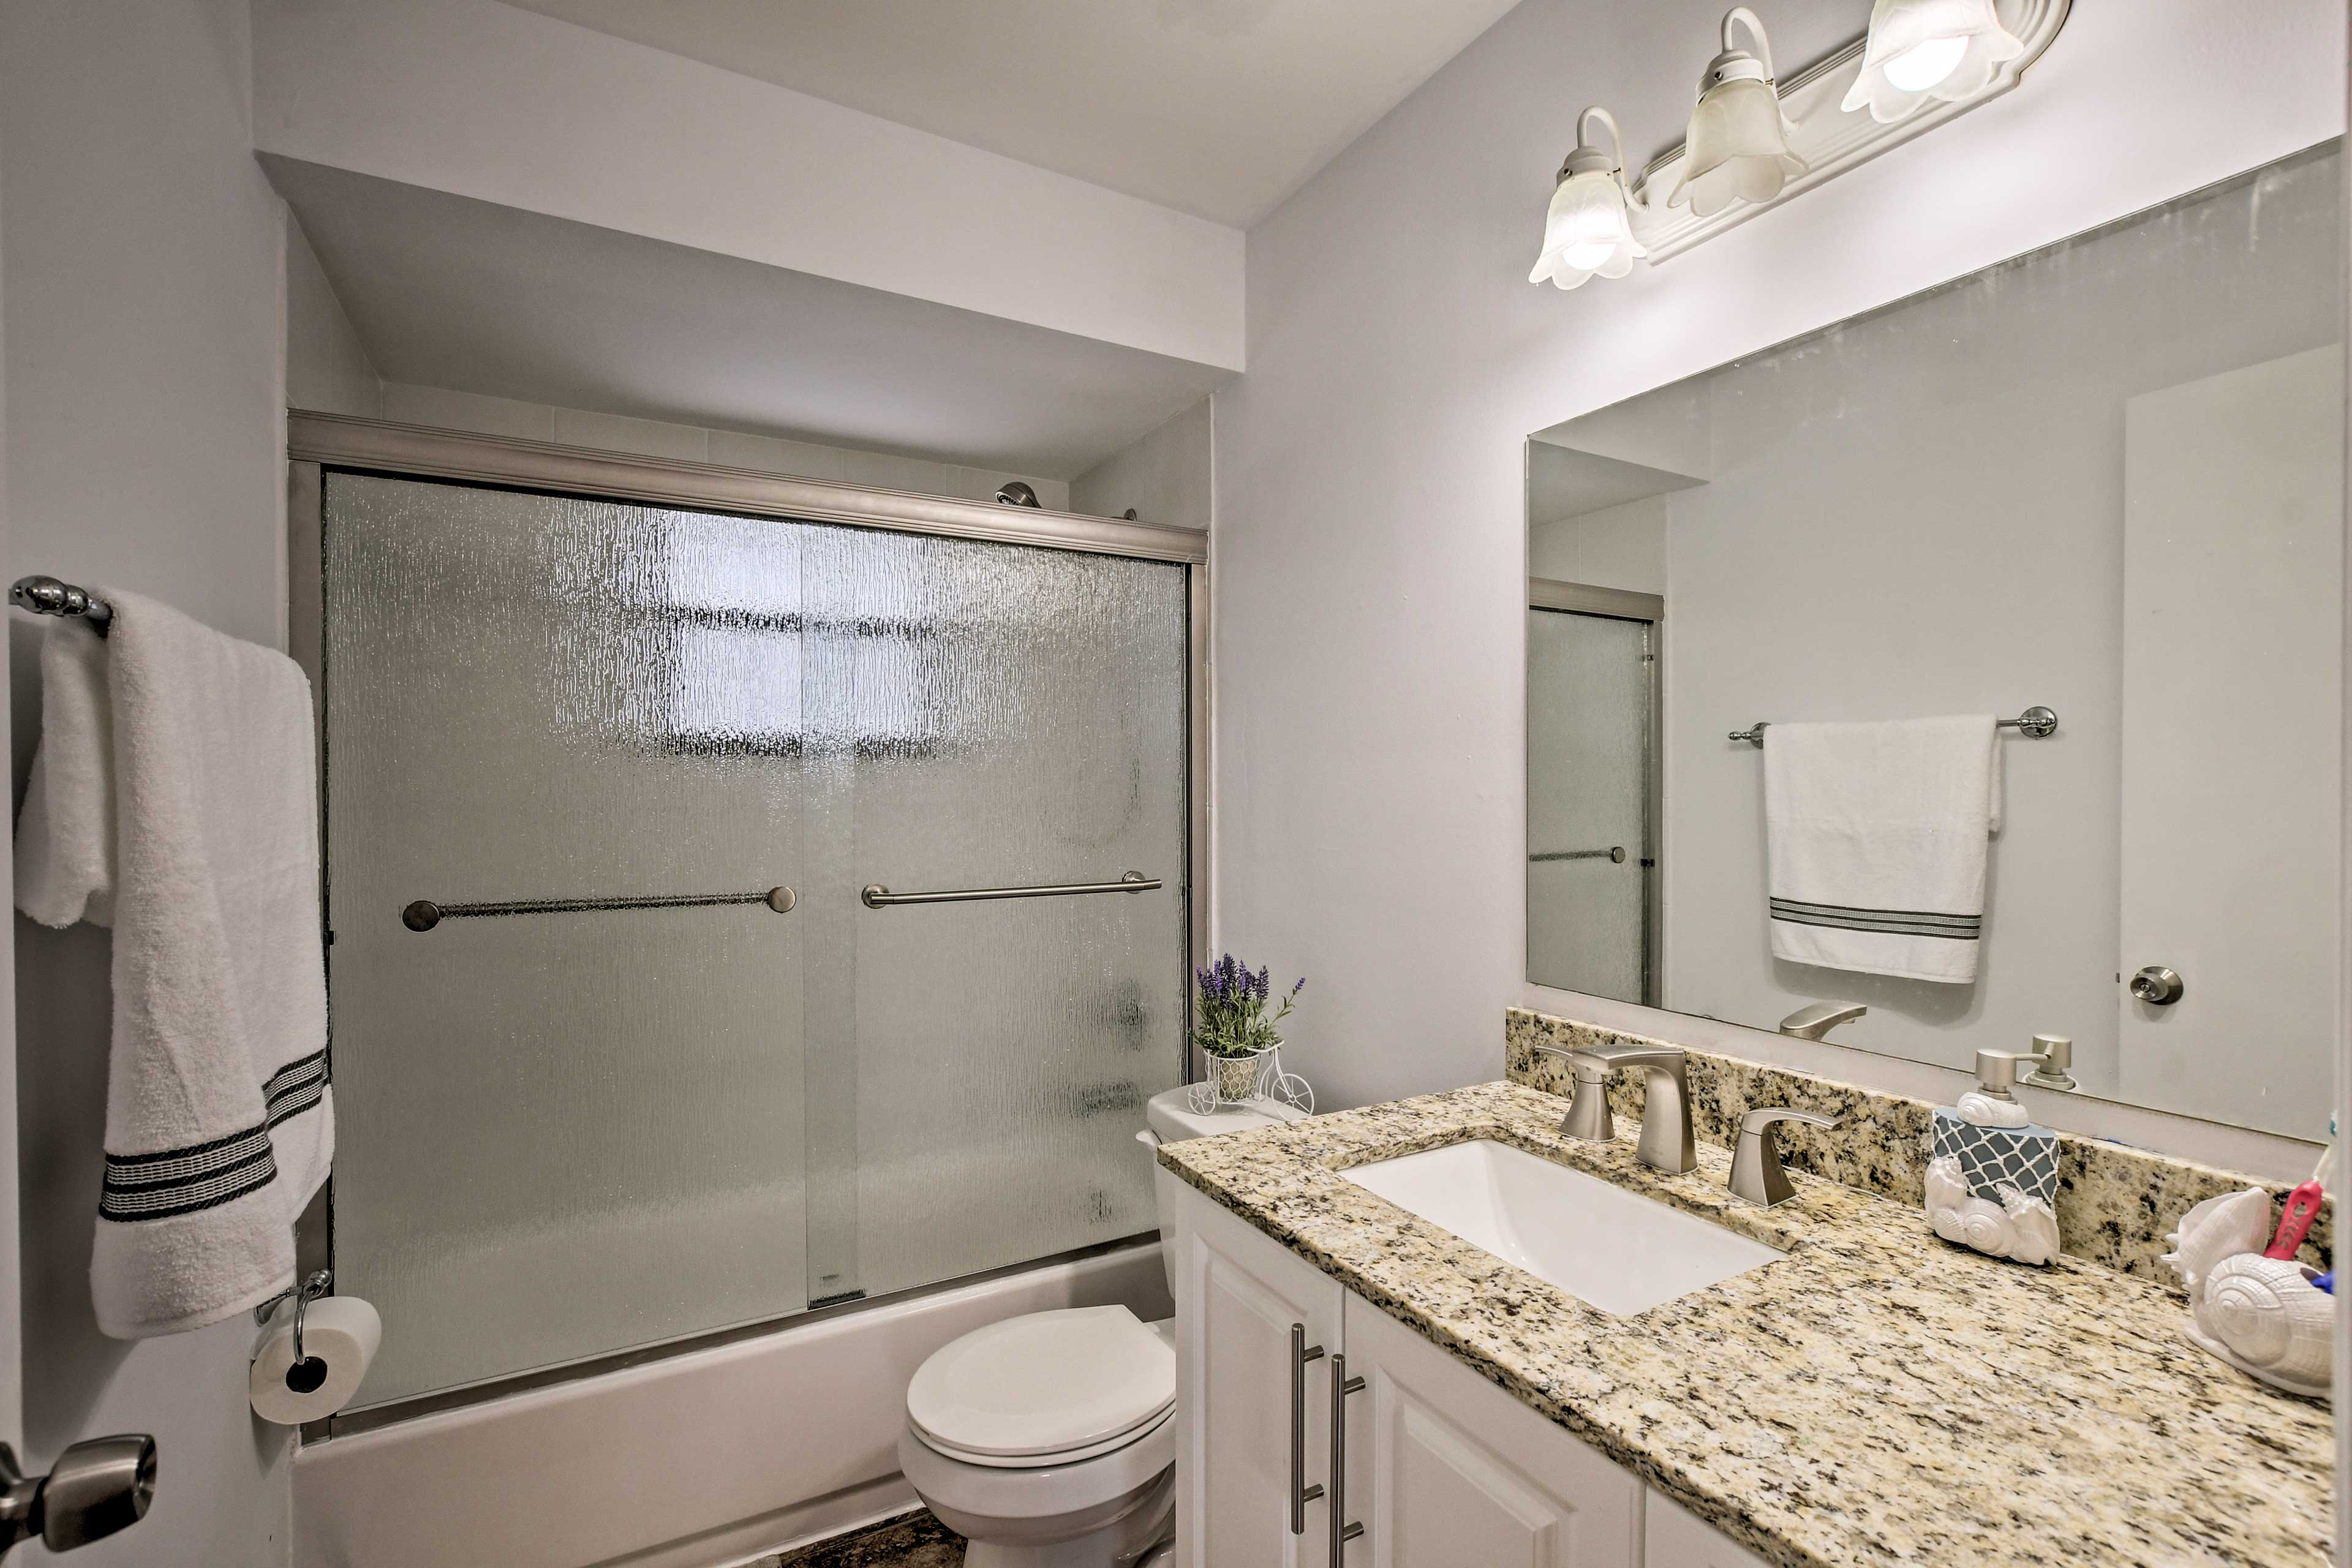 This bathroom has a shower/tub combo.